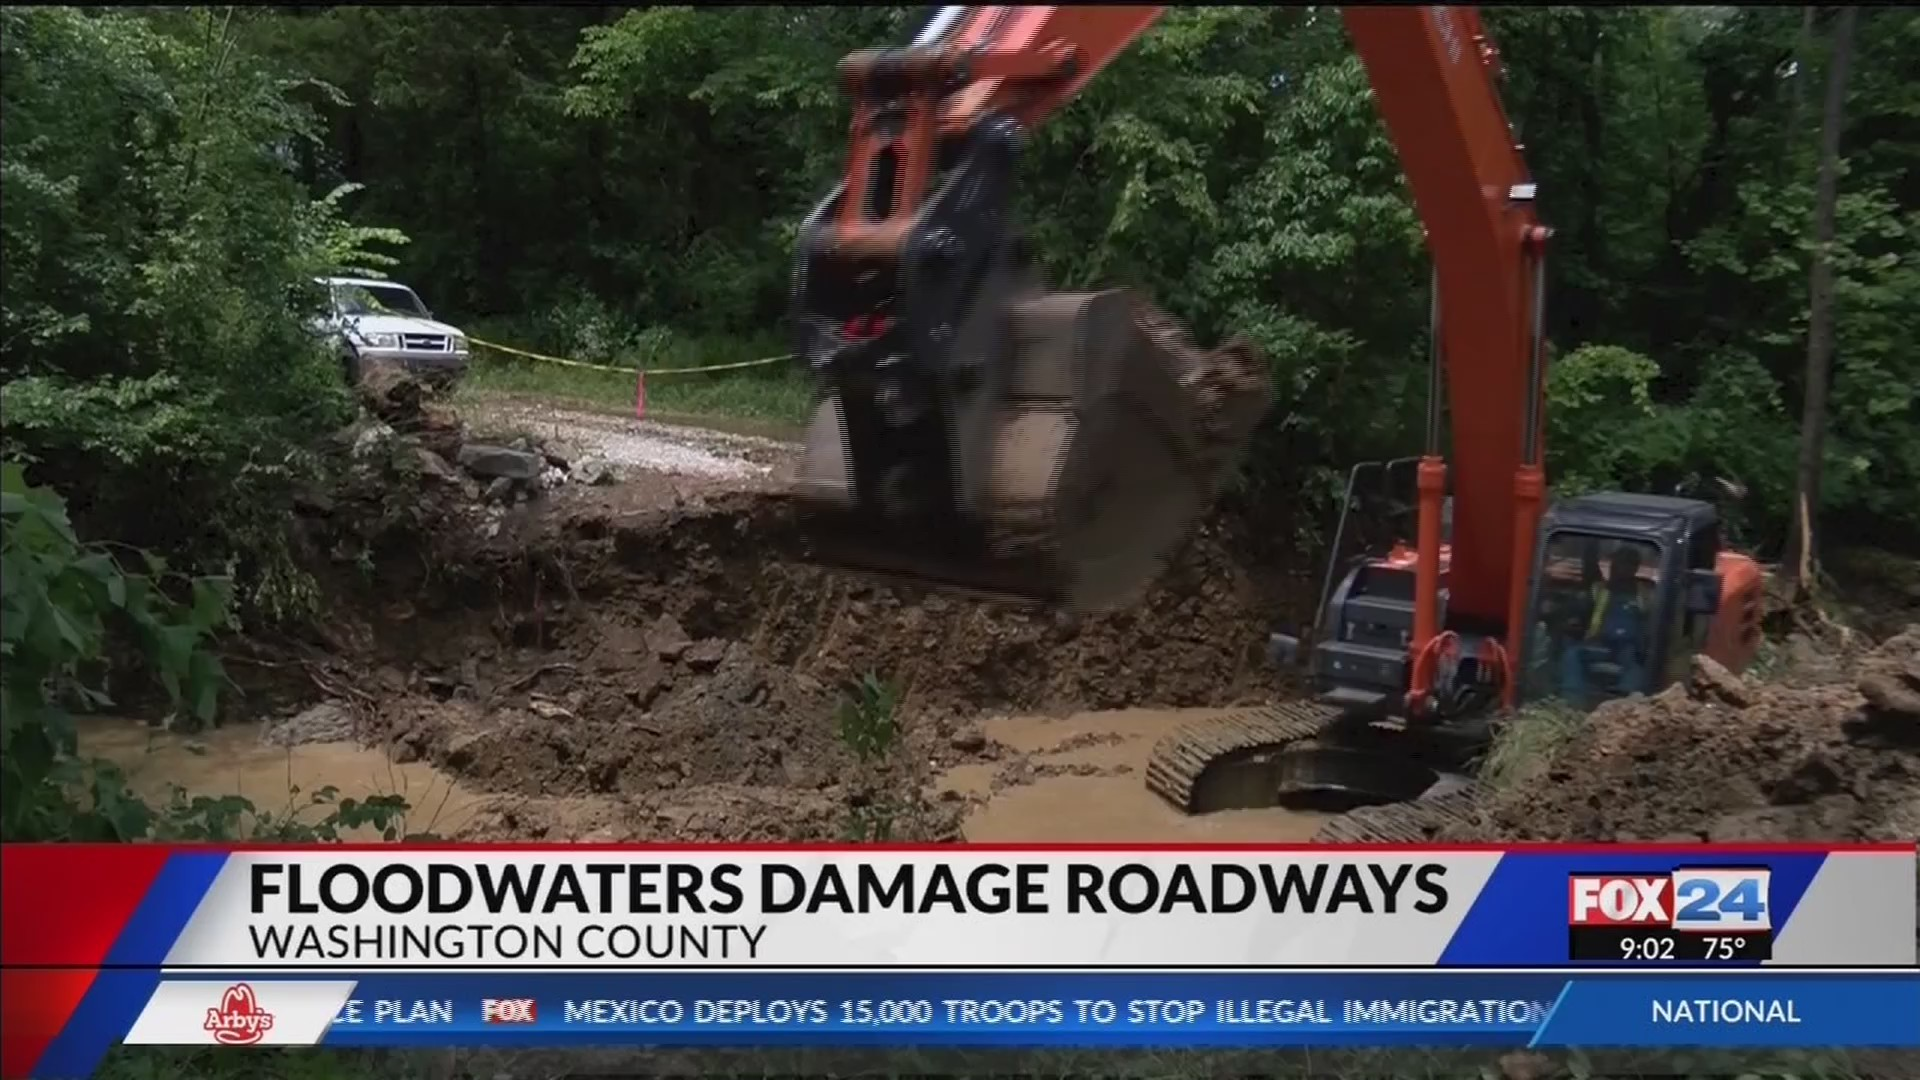 Floods damage roads in Washington County (Fox 24)